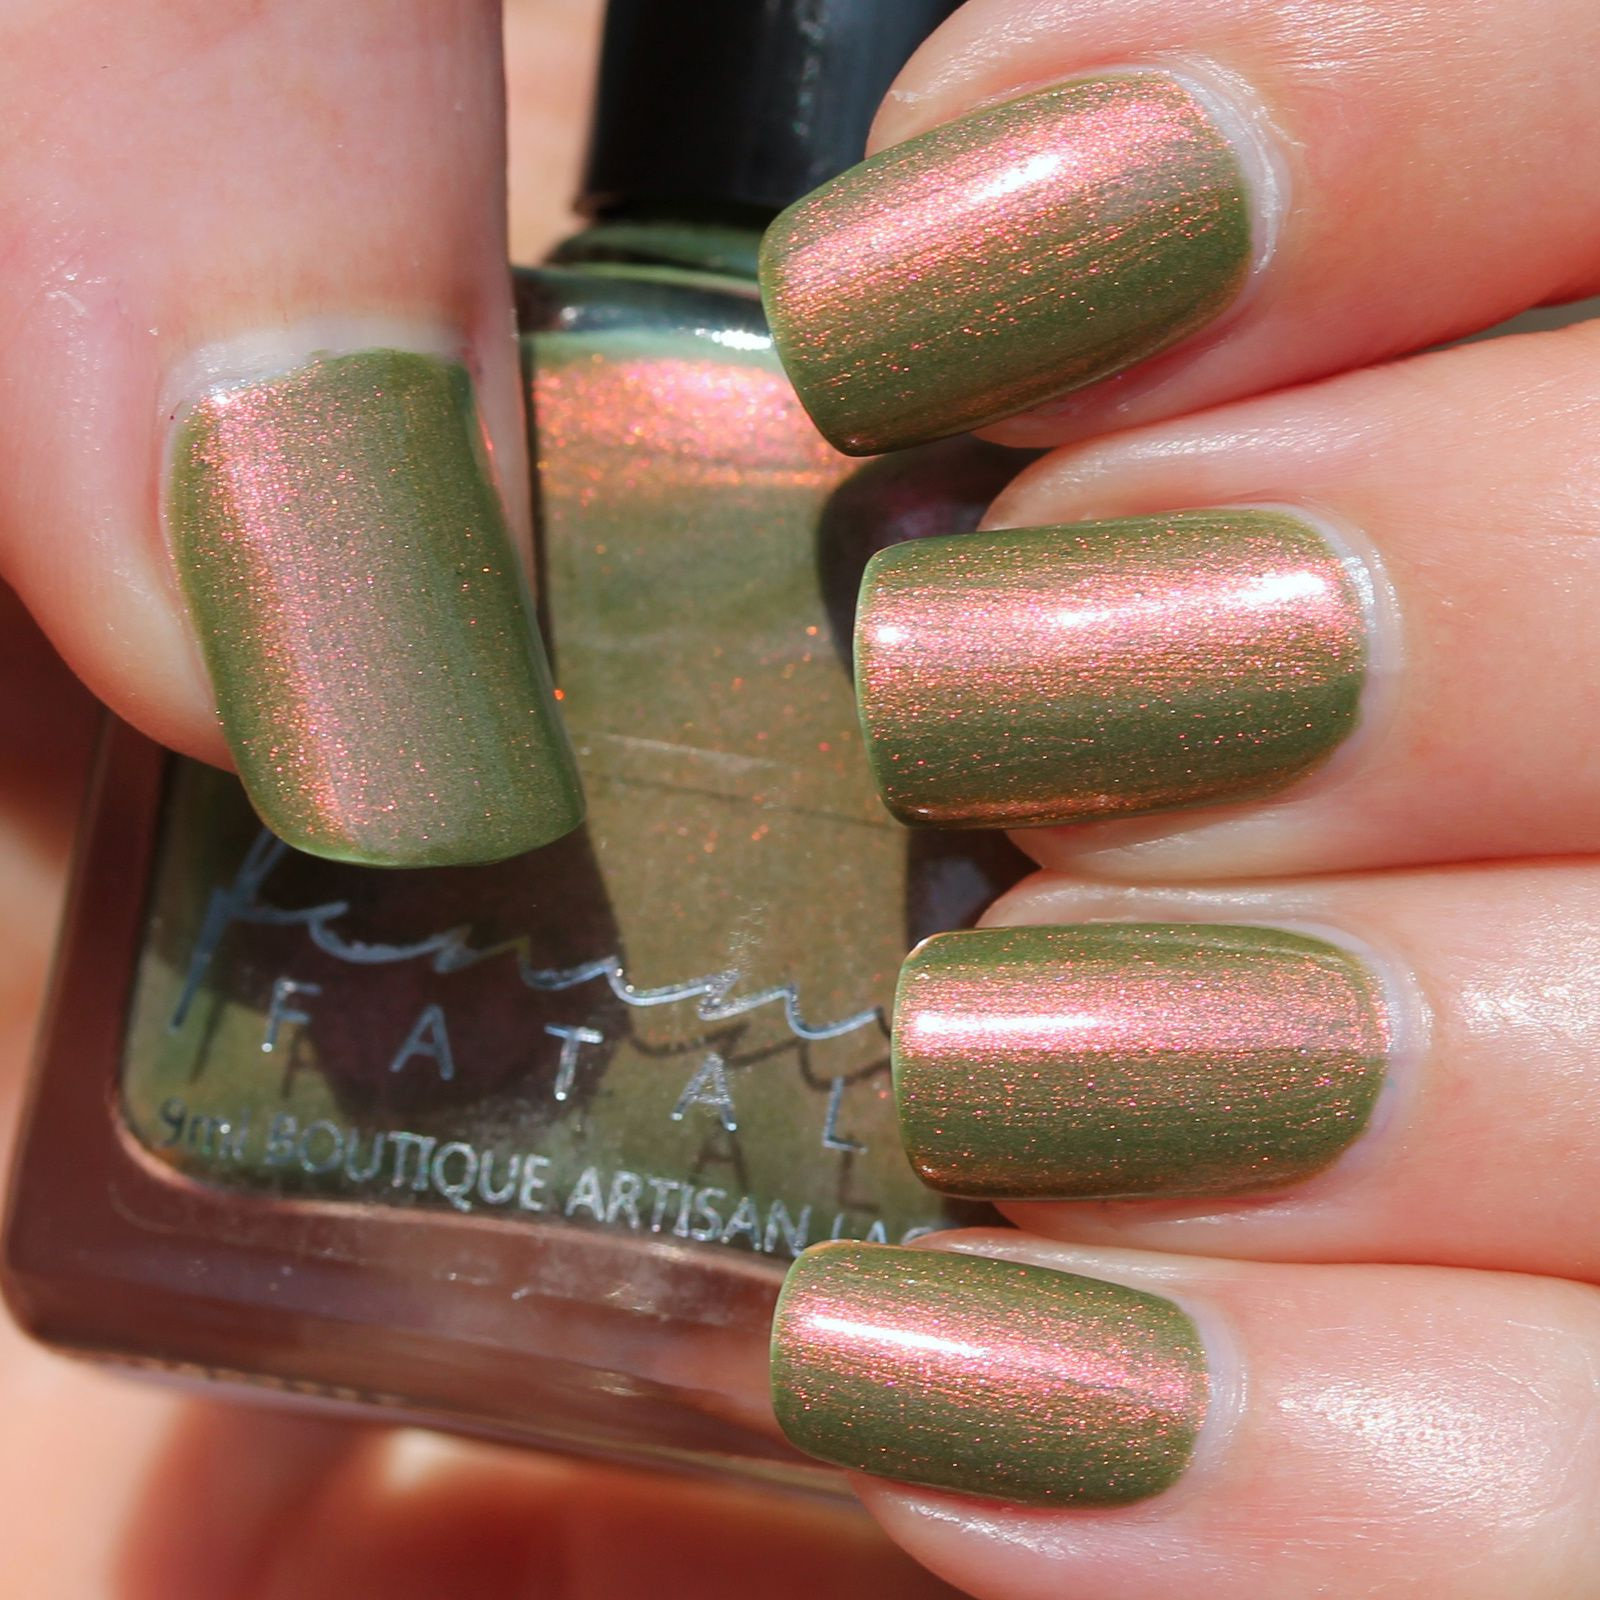 Femme Fatale Cosmetics - Infamous Riddle (2 coats, no top coat)